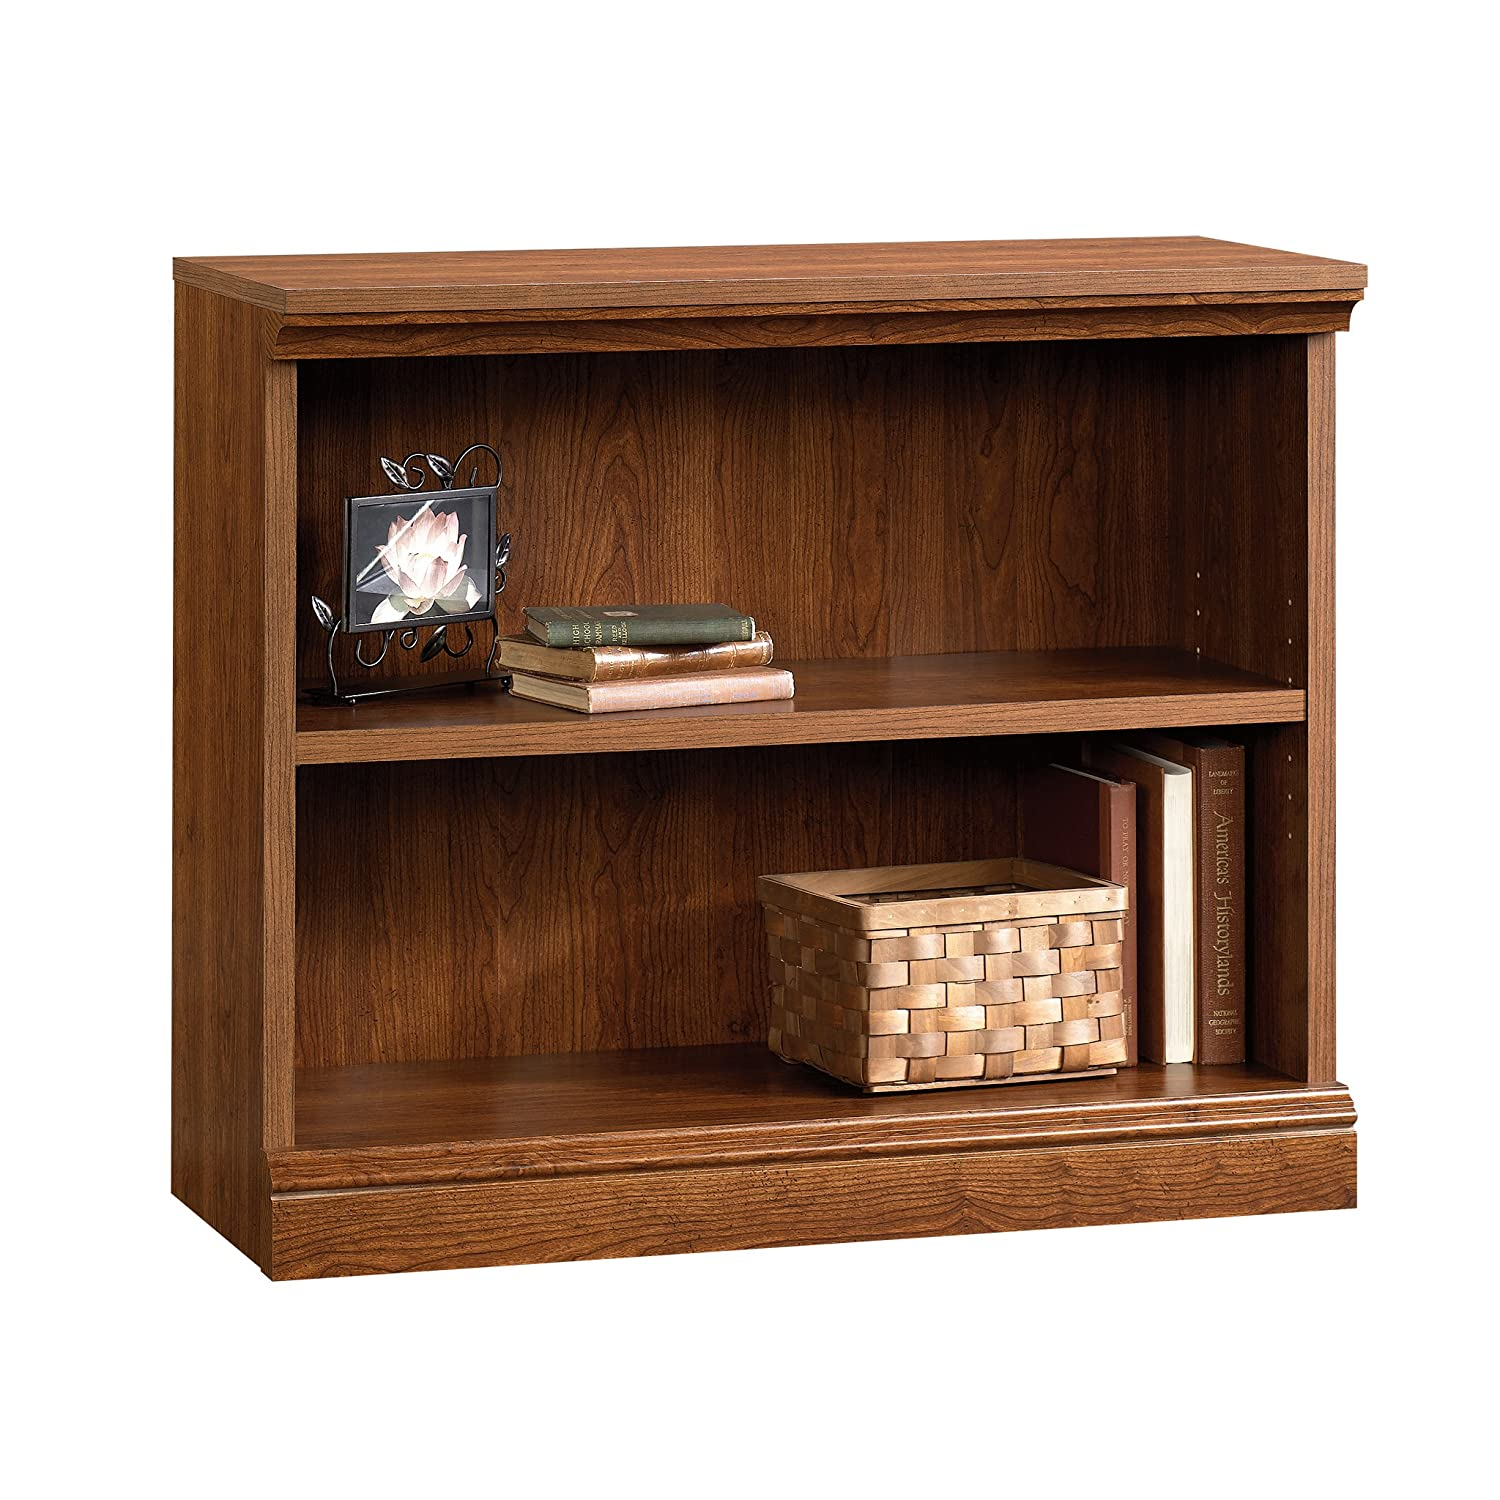 Sauder Camden County 2-Shelf Bookcase, Planked Cherry 101782